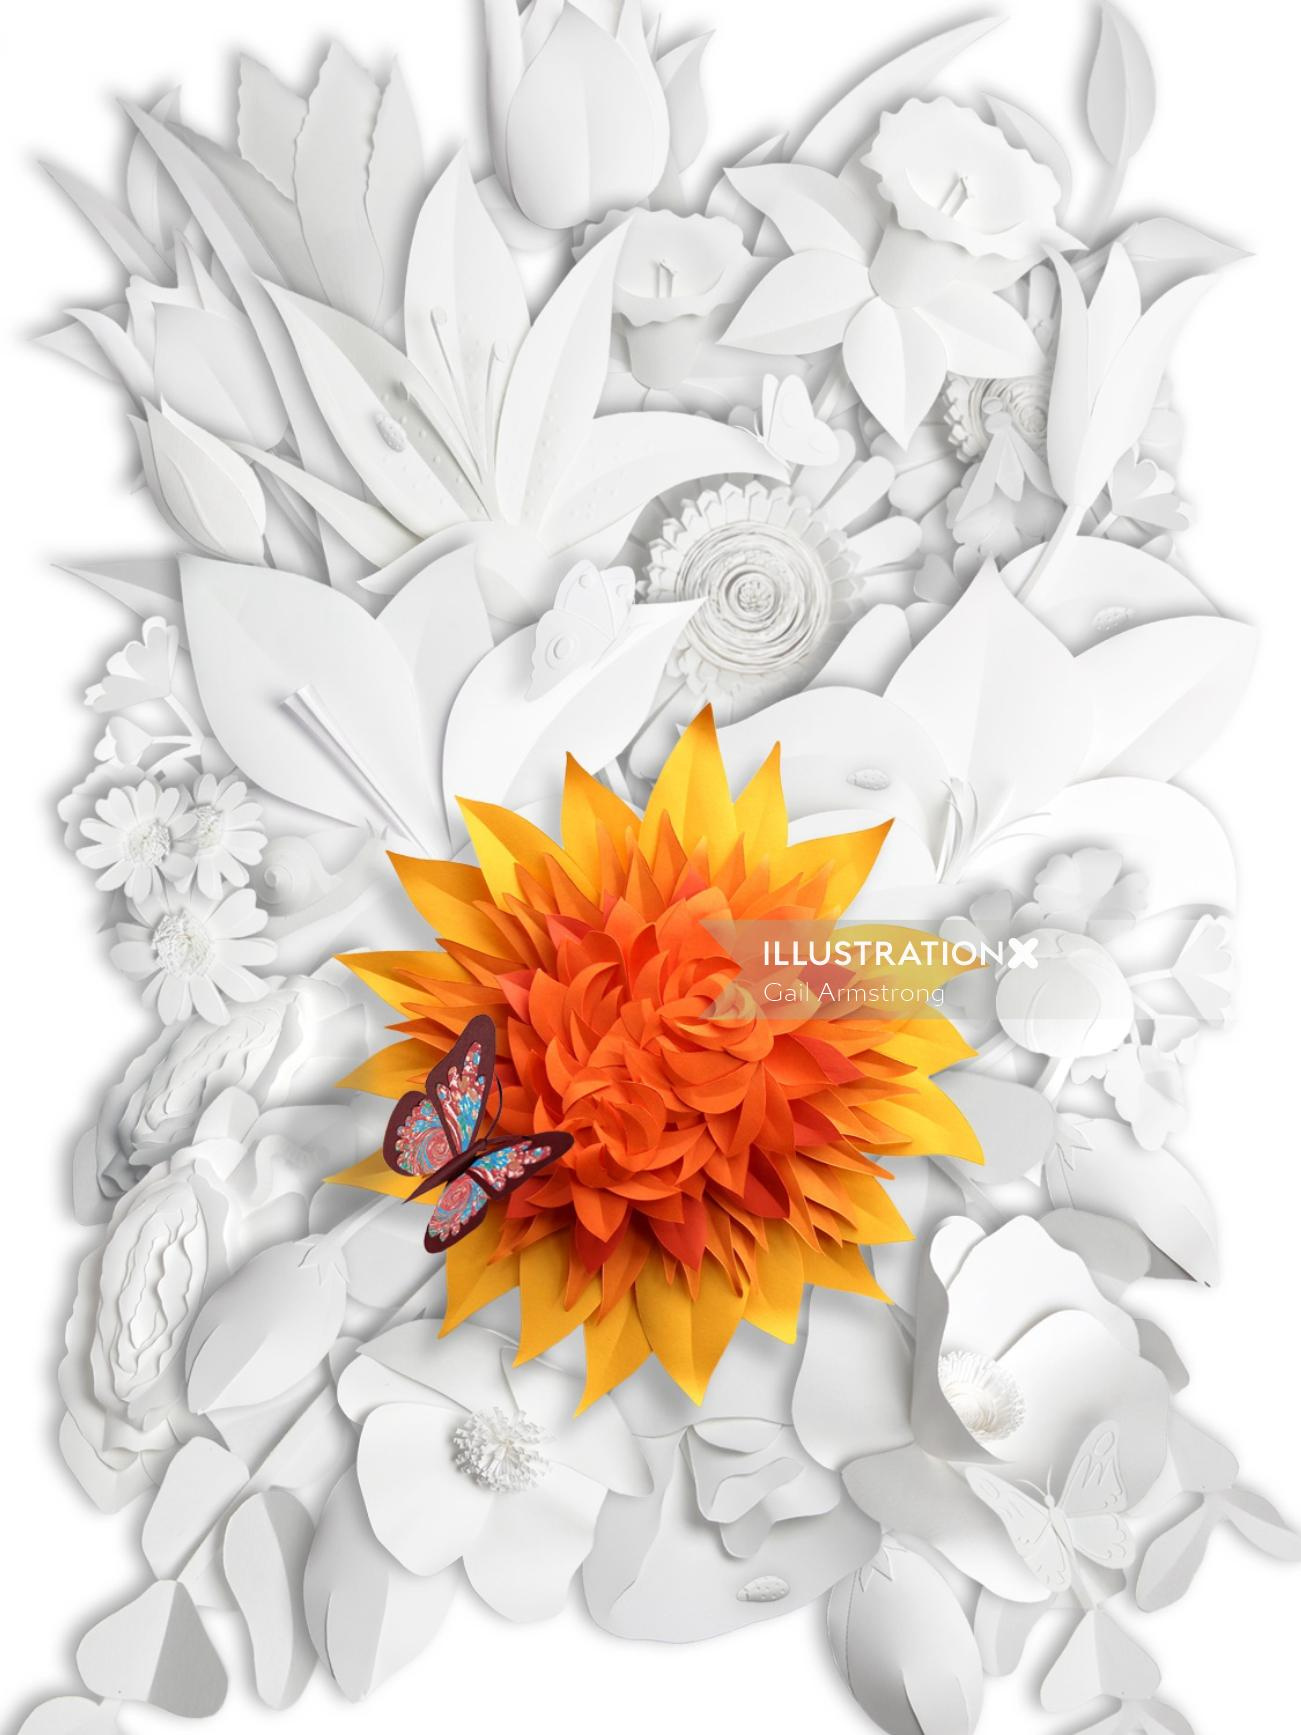 illustration of butterfly on dahlia flower